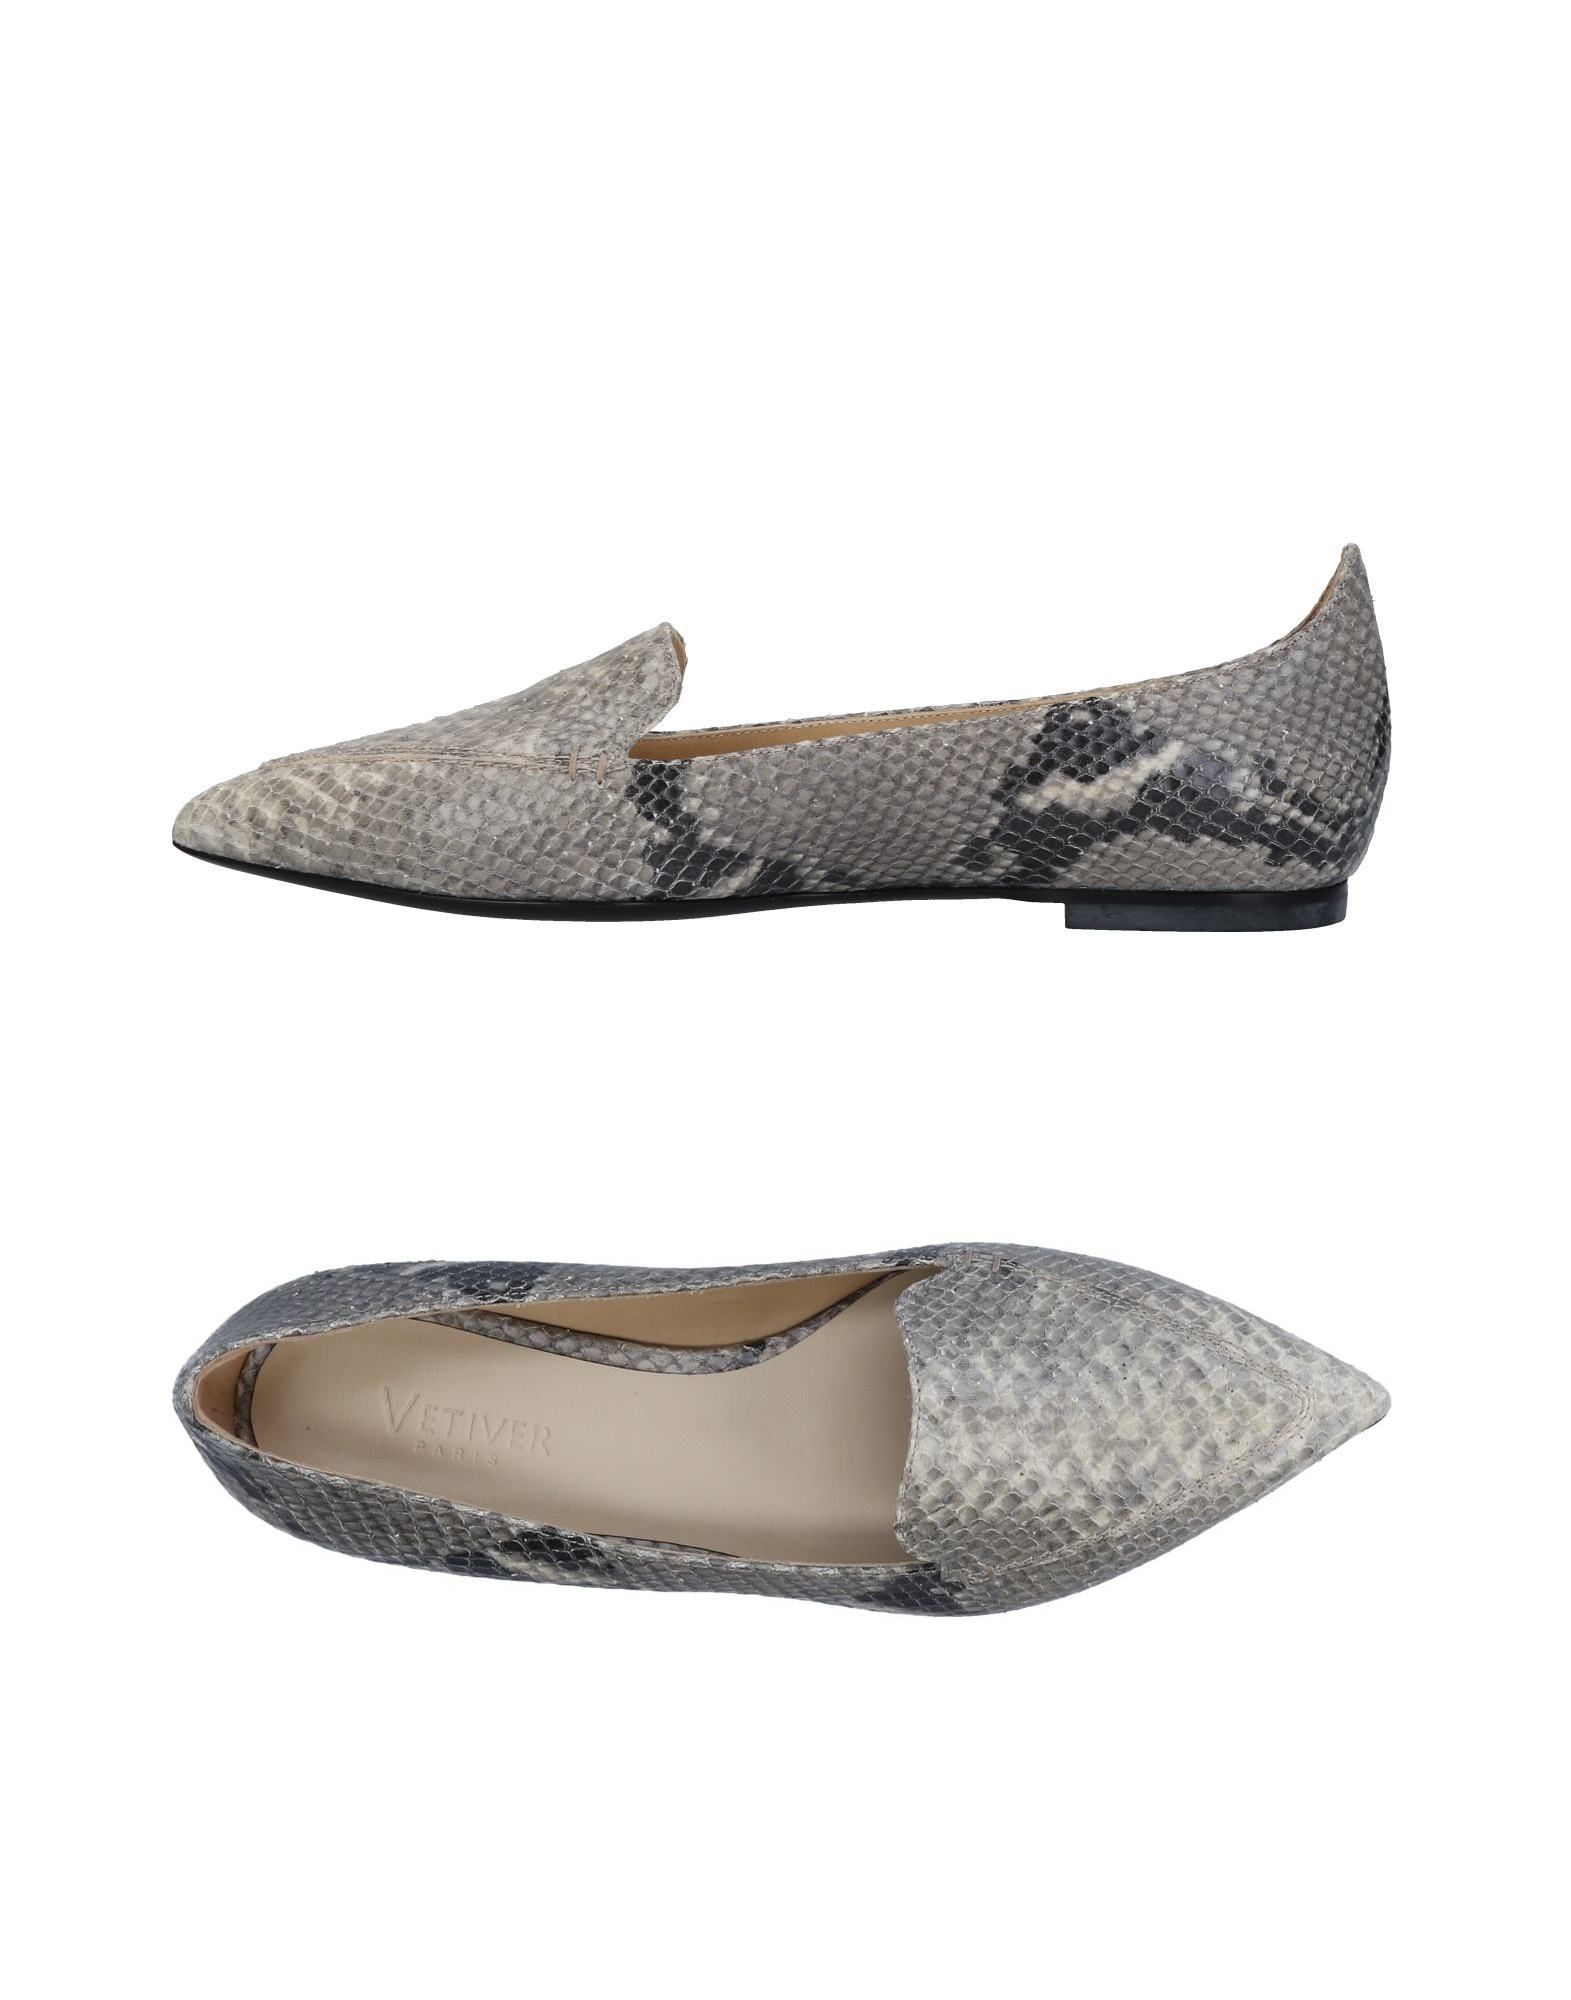 VETIVER Loafers in Light Grey